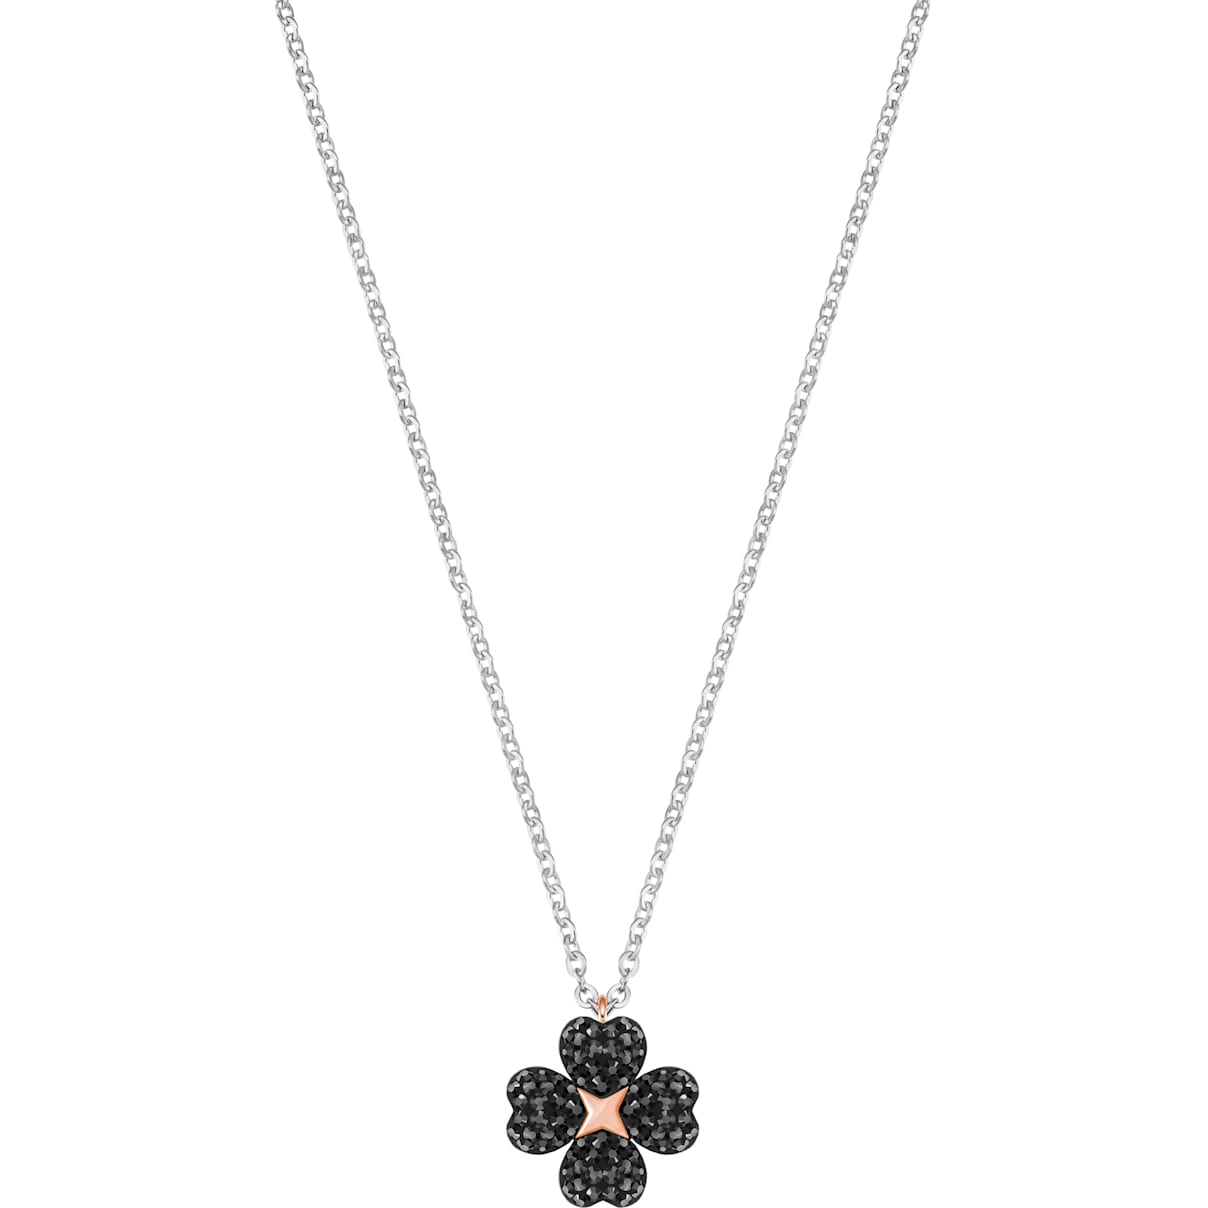 Swarovski Latisha Flower Pendant, Black, Mixed metal finish